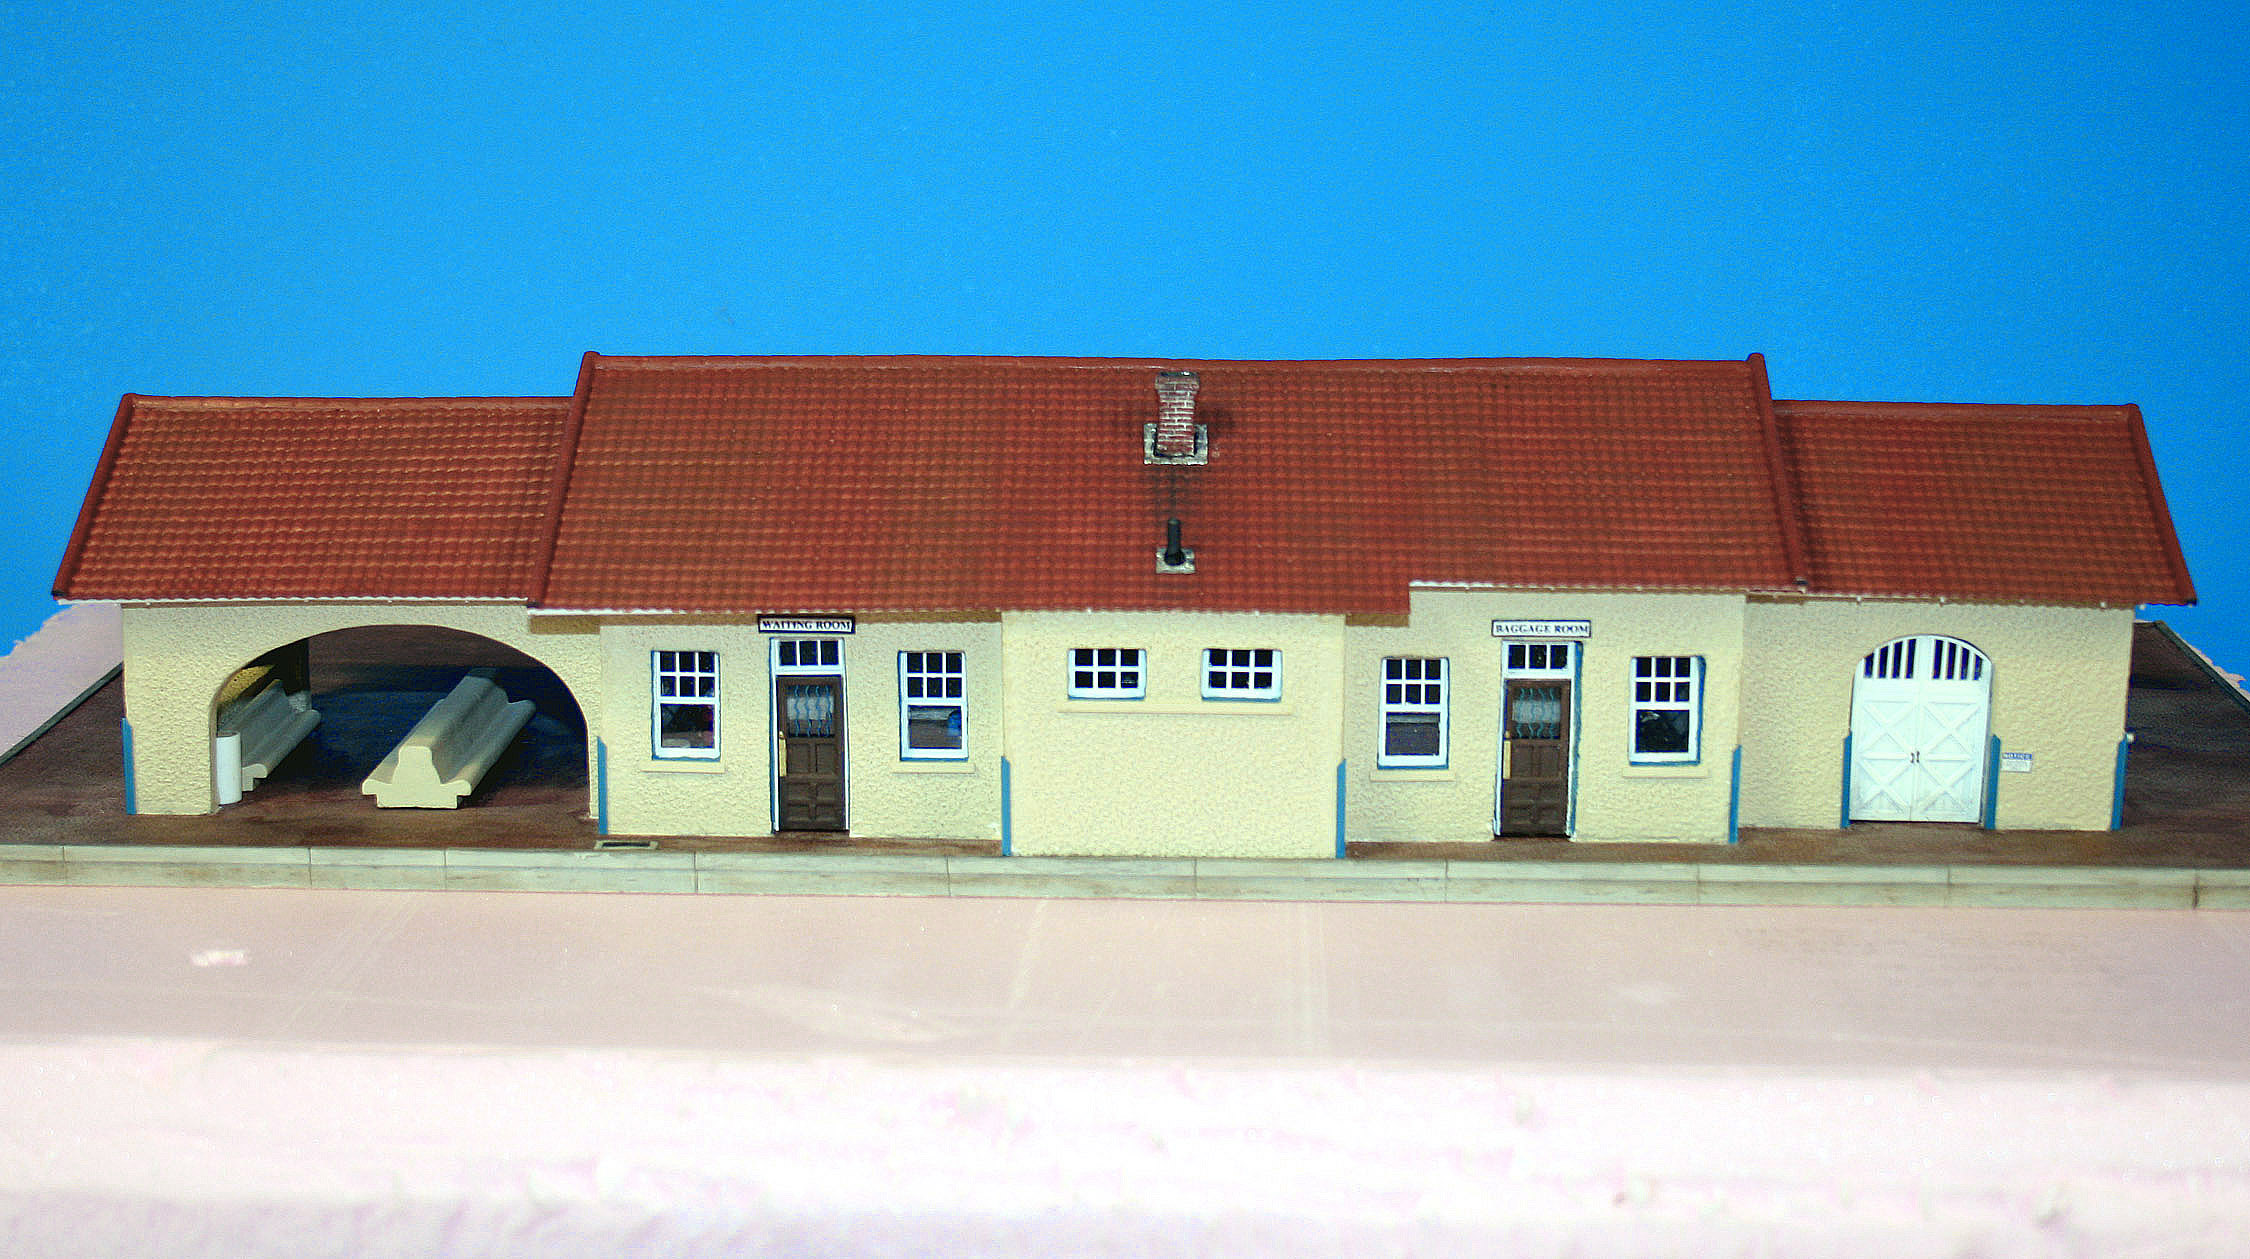 Lamy Depot NM HO scale model by Peter Ypungblood